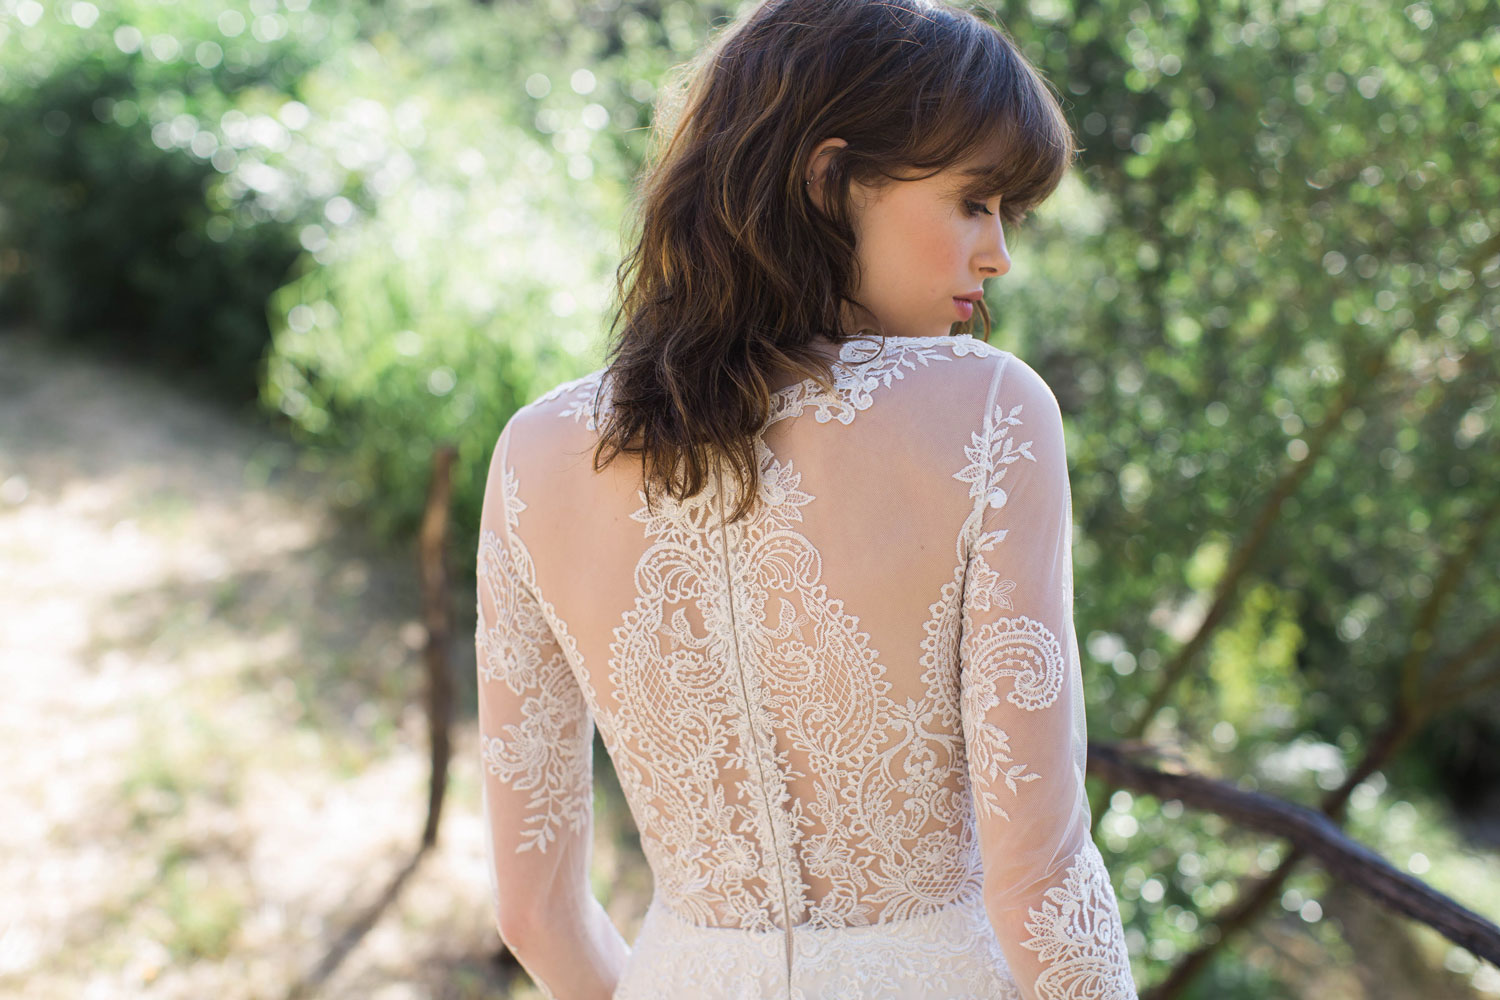 Claire Pettibone Romantique stylized shoot in Malibu California Dreamin' collection Pasadena wedding dress lace back